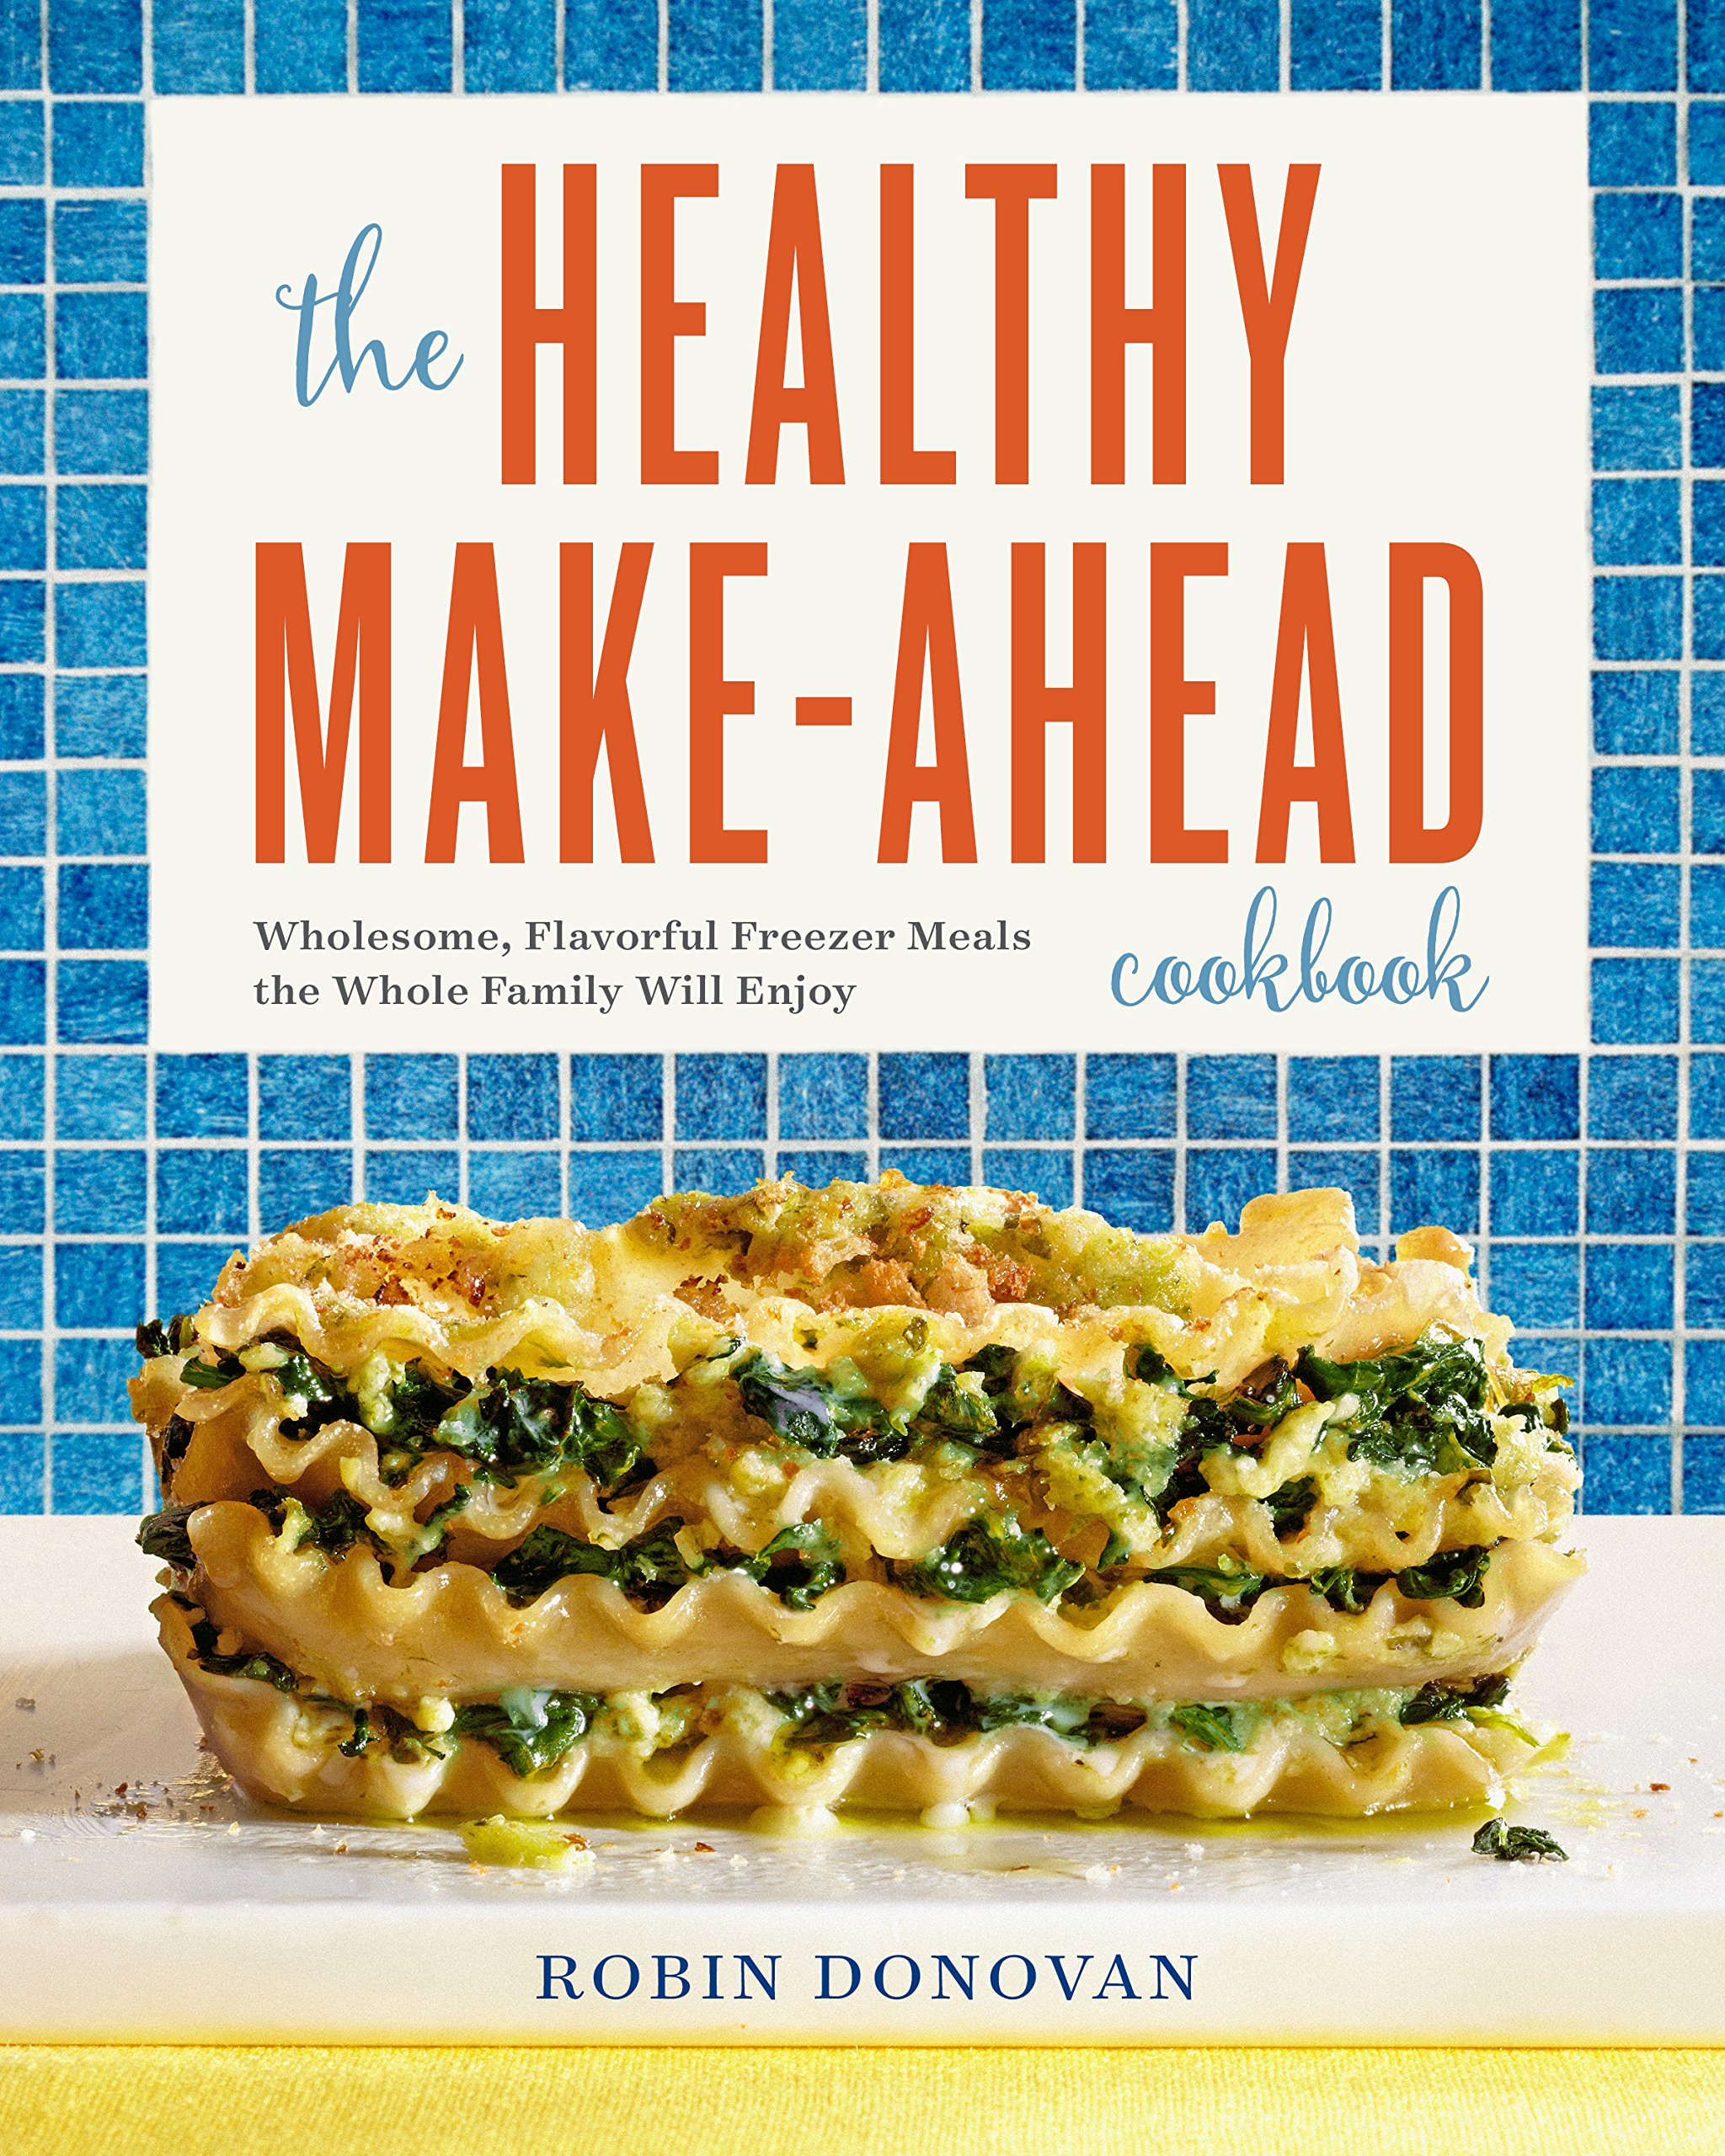 The Healthy Make Ahead Cookbook: Wholesome, Flavorful Freezer Meals the Whole Family Will Enjoy